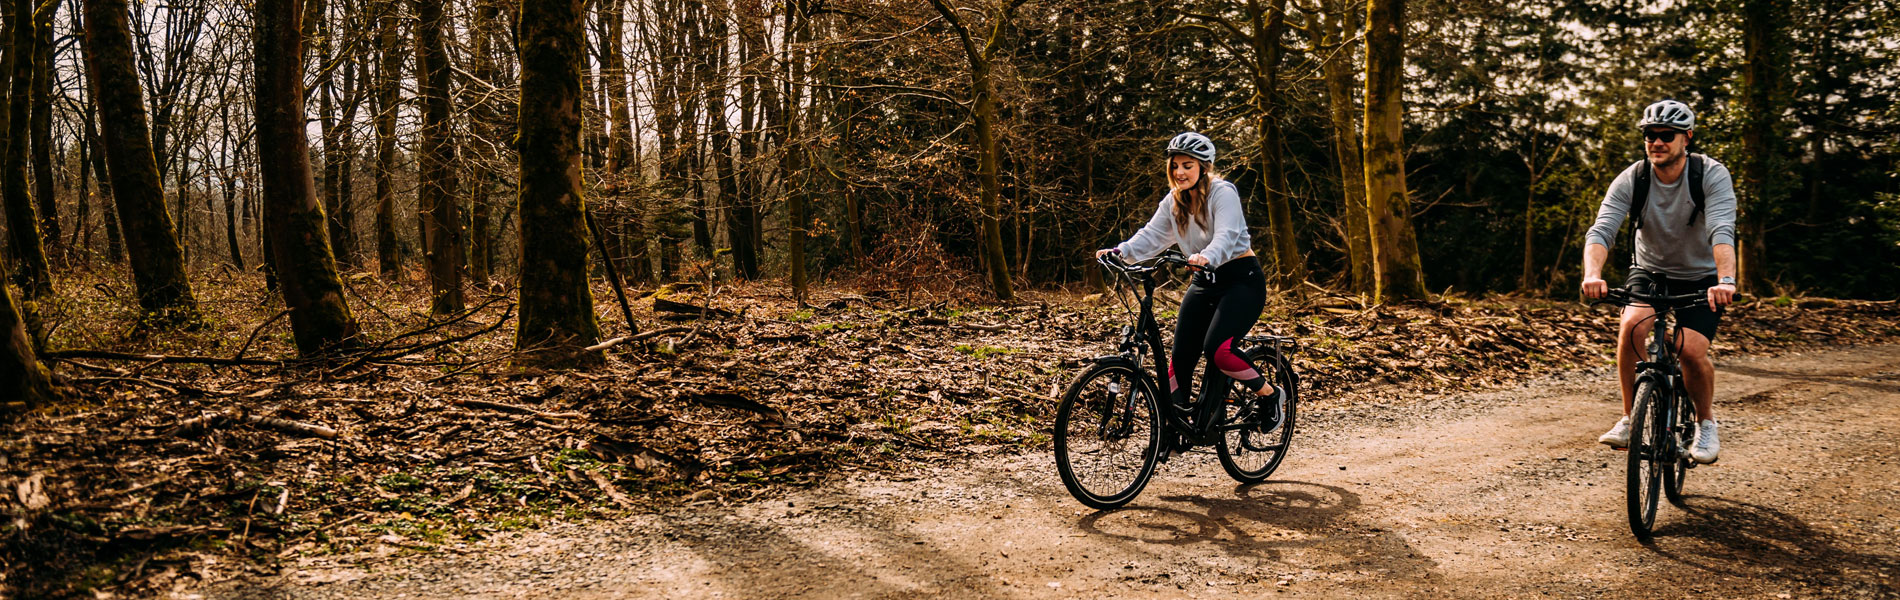 Hire Quality Electric Bikes